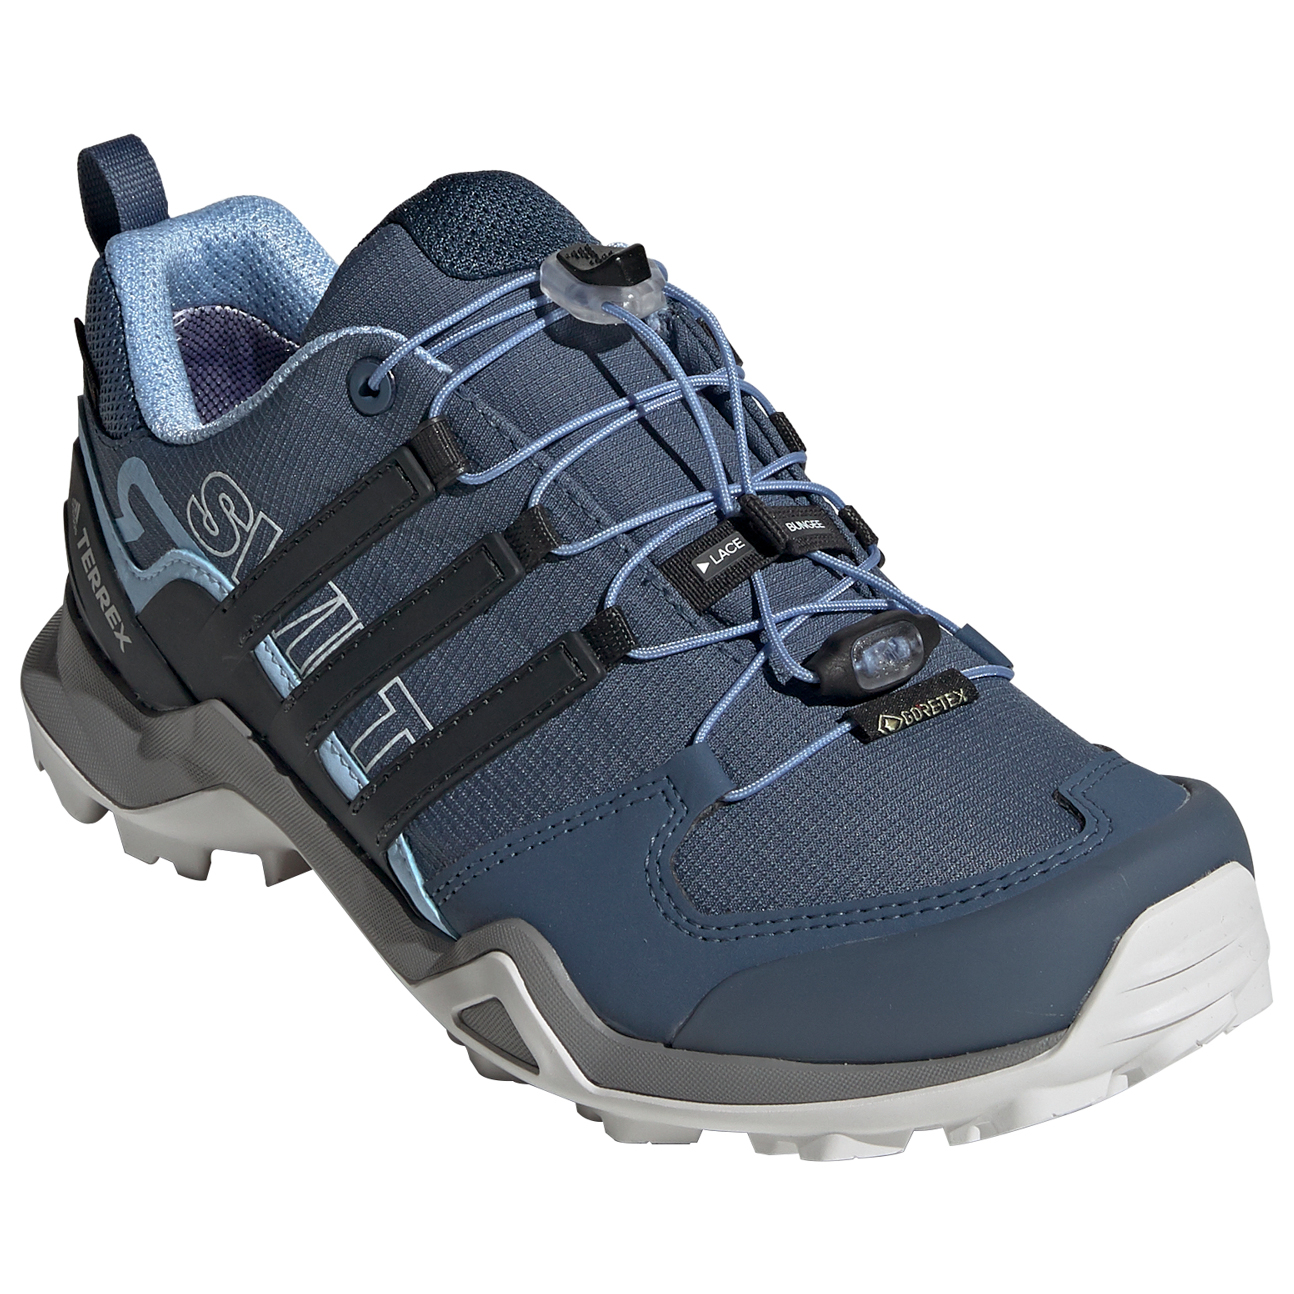 uk availability 2ff13 18ce1 adidas - Women's Terrex Swift R2 GTX - Multisport shoes - Tech Ink / Carbon  / Glow Blue | 4 (UK)